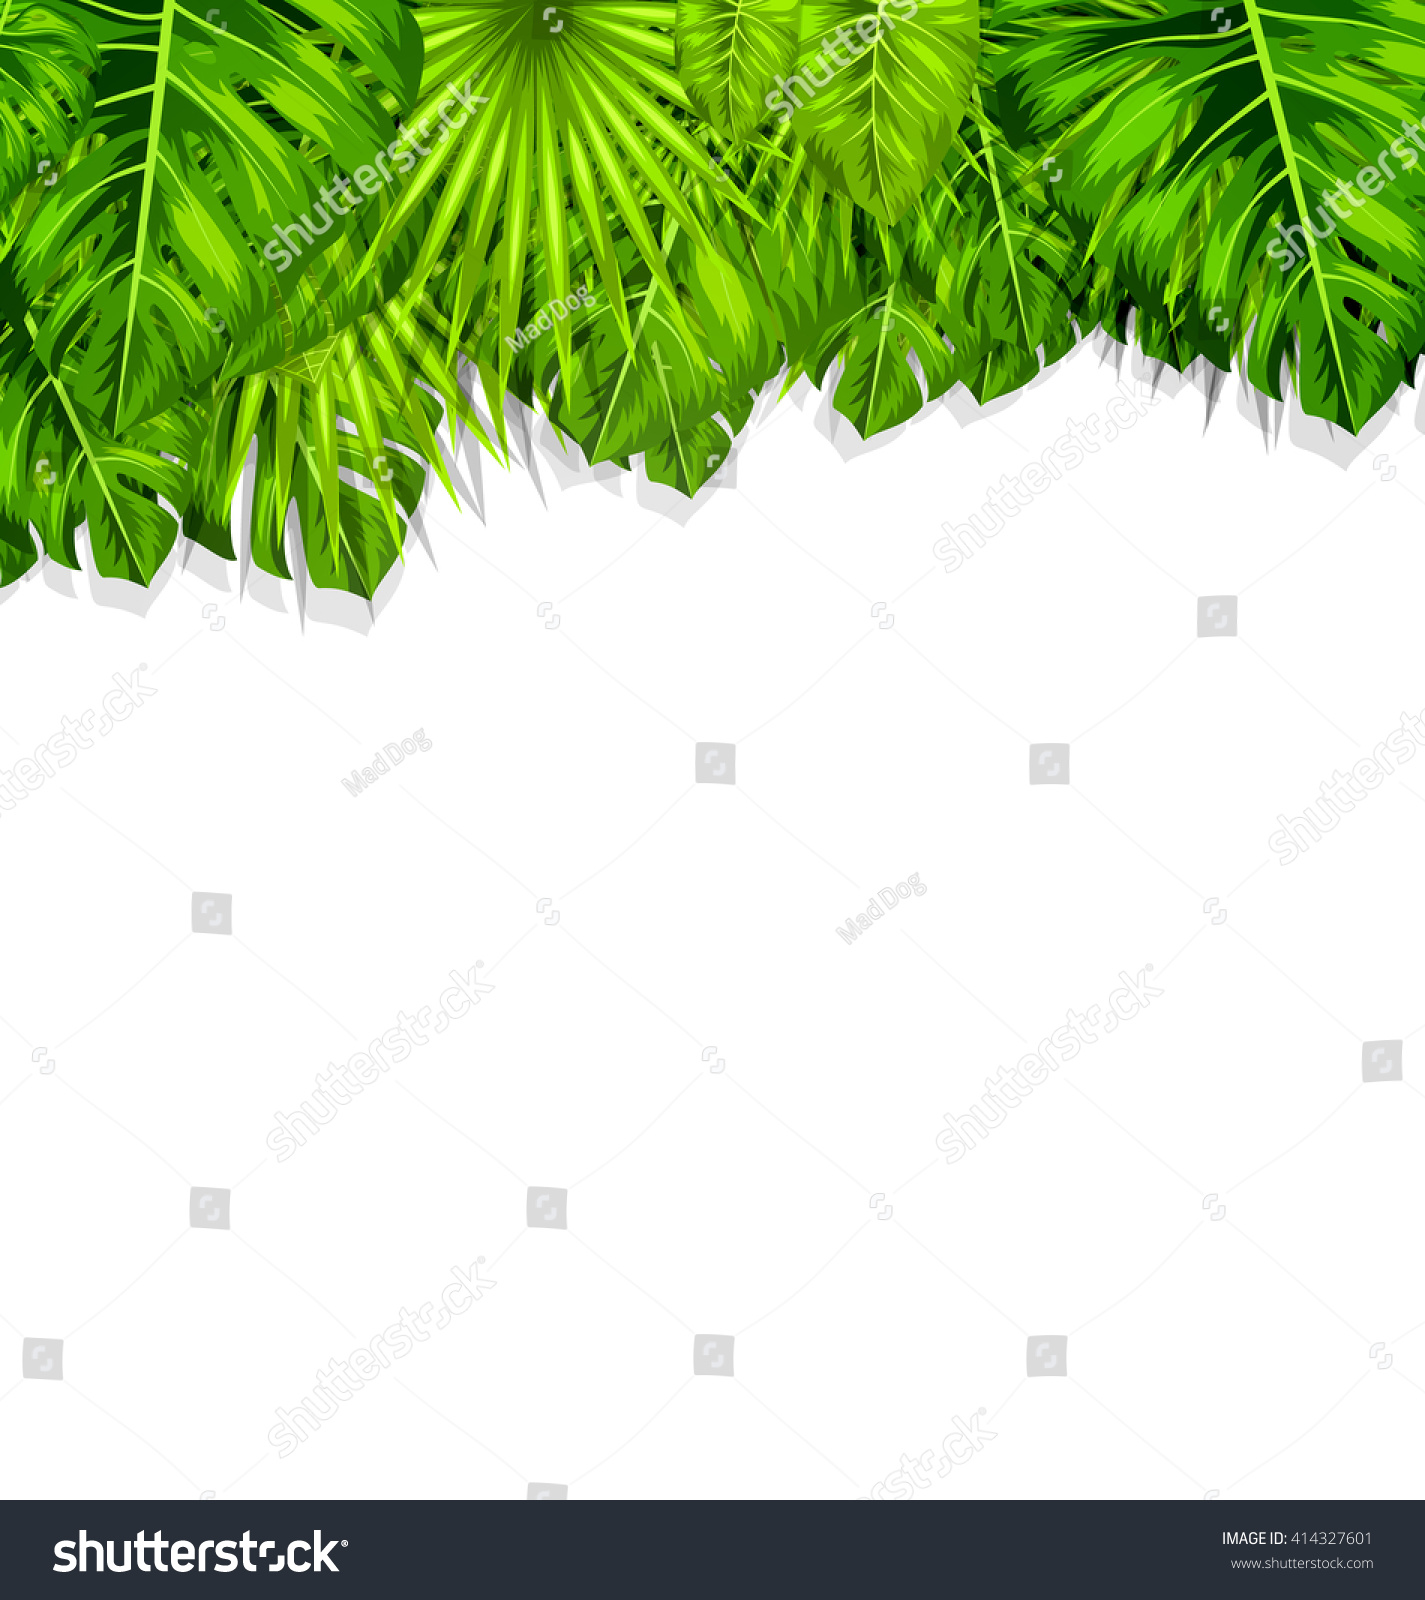 Illustration Natural Frame Green Tropical Leaves Stock Vector ...